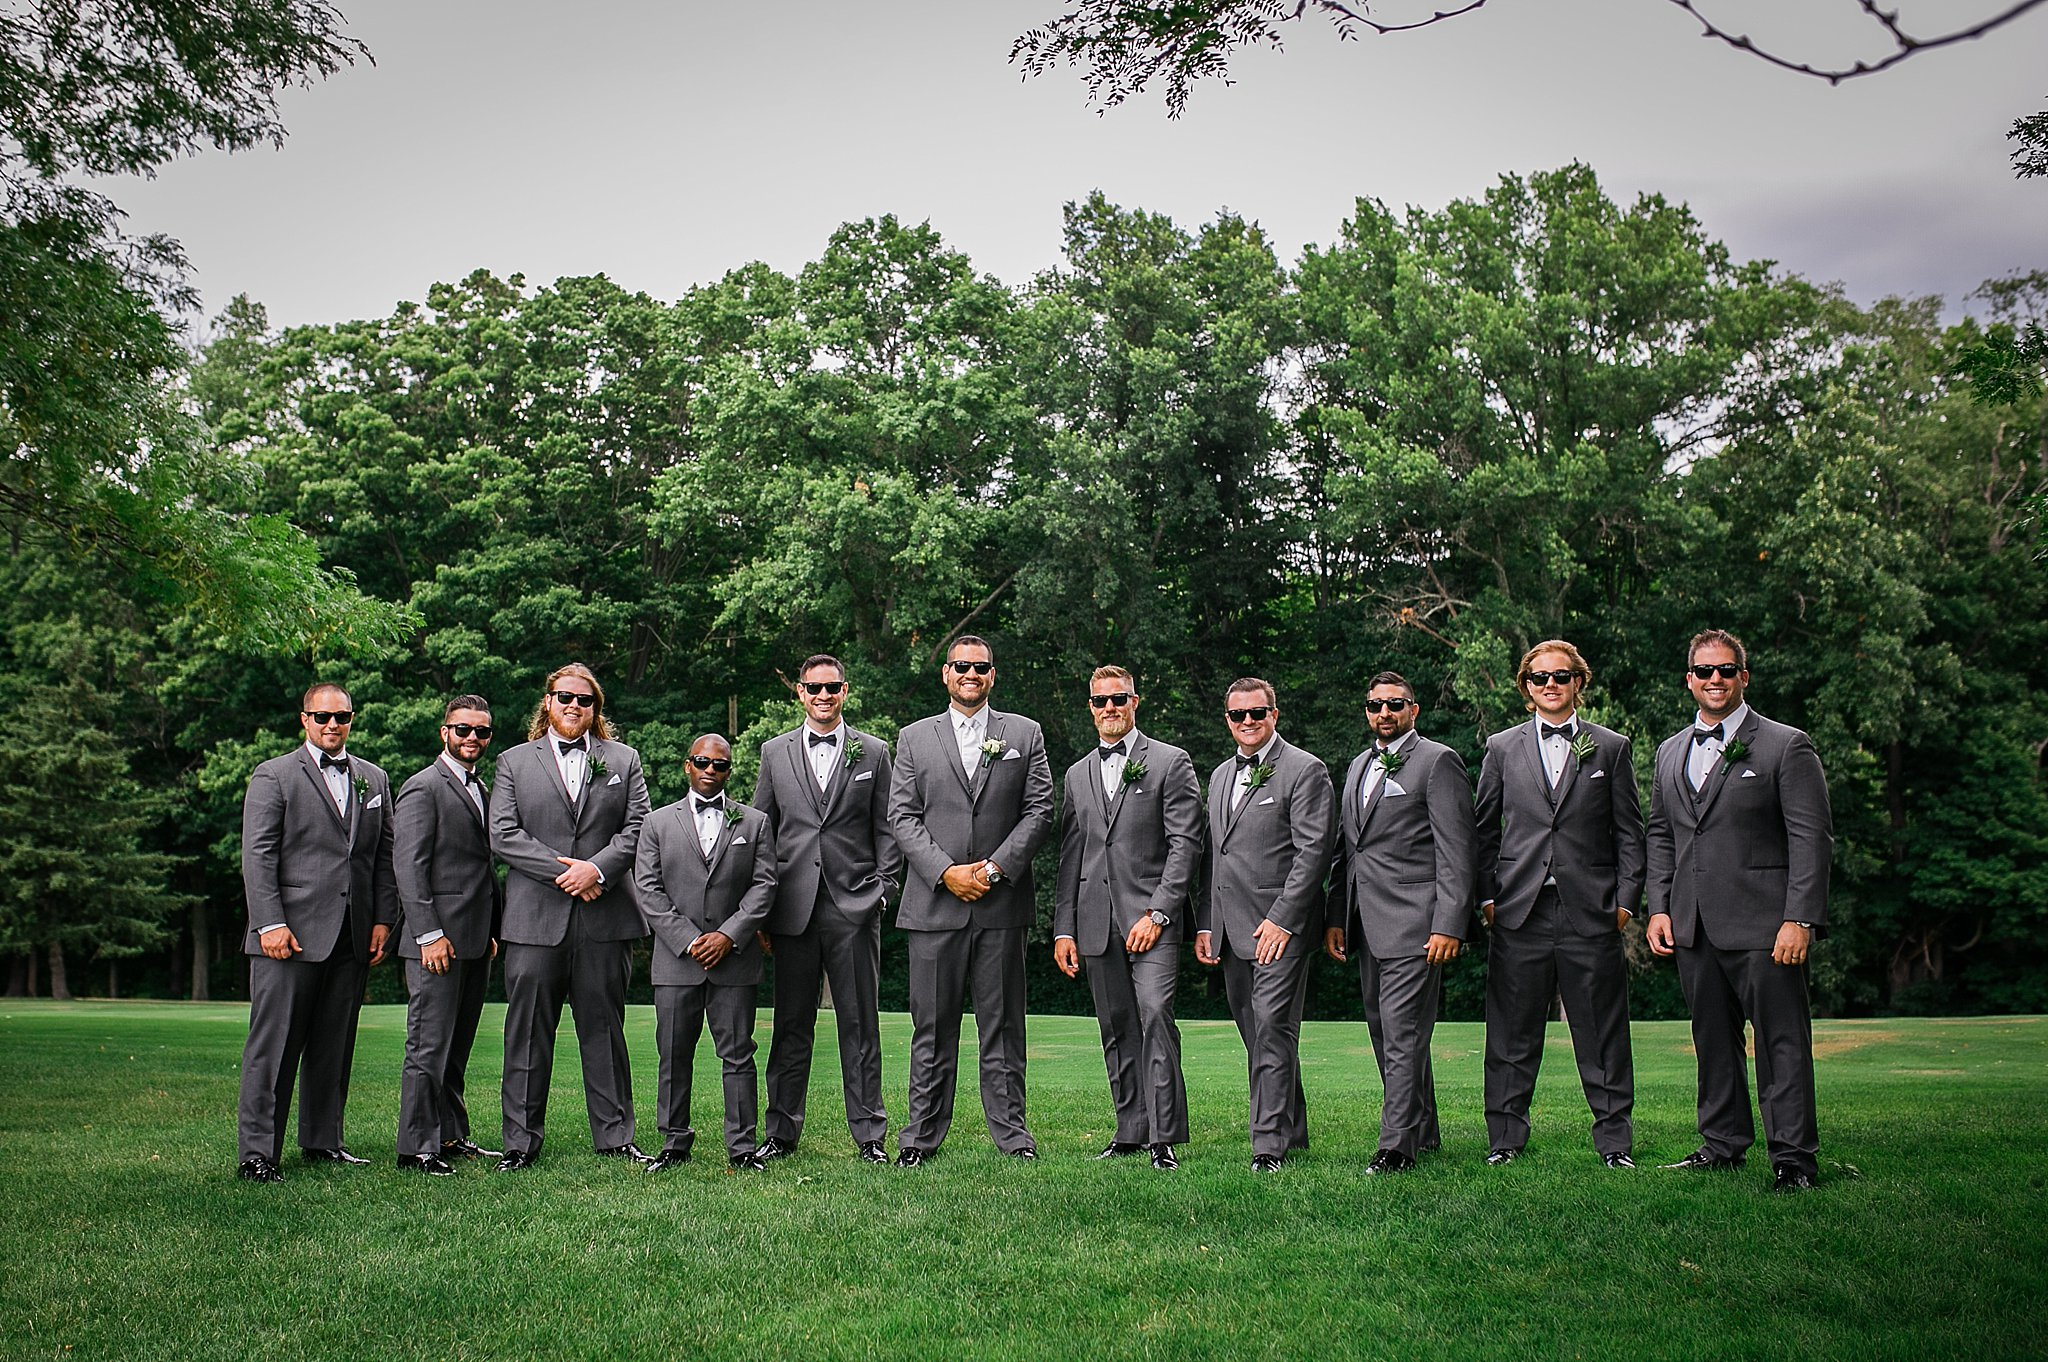 West Hills Country Club Wedding July Wedding Hudson Valley Wedding Hudson Valley Wedding Photographer Sweet Alice Photography49.jpg